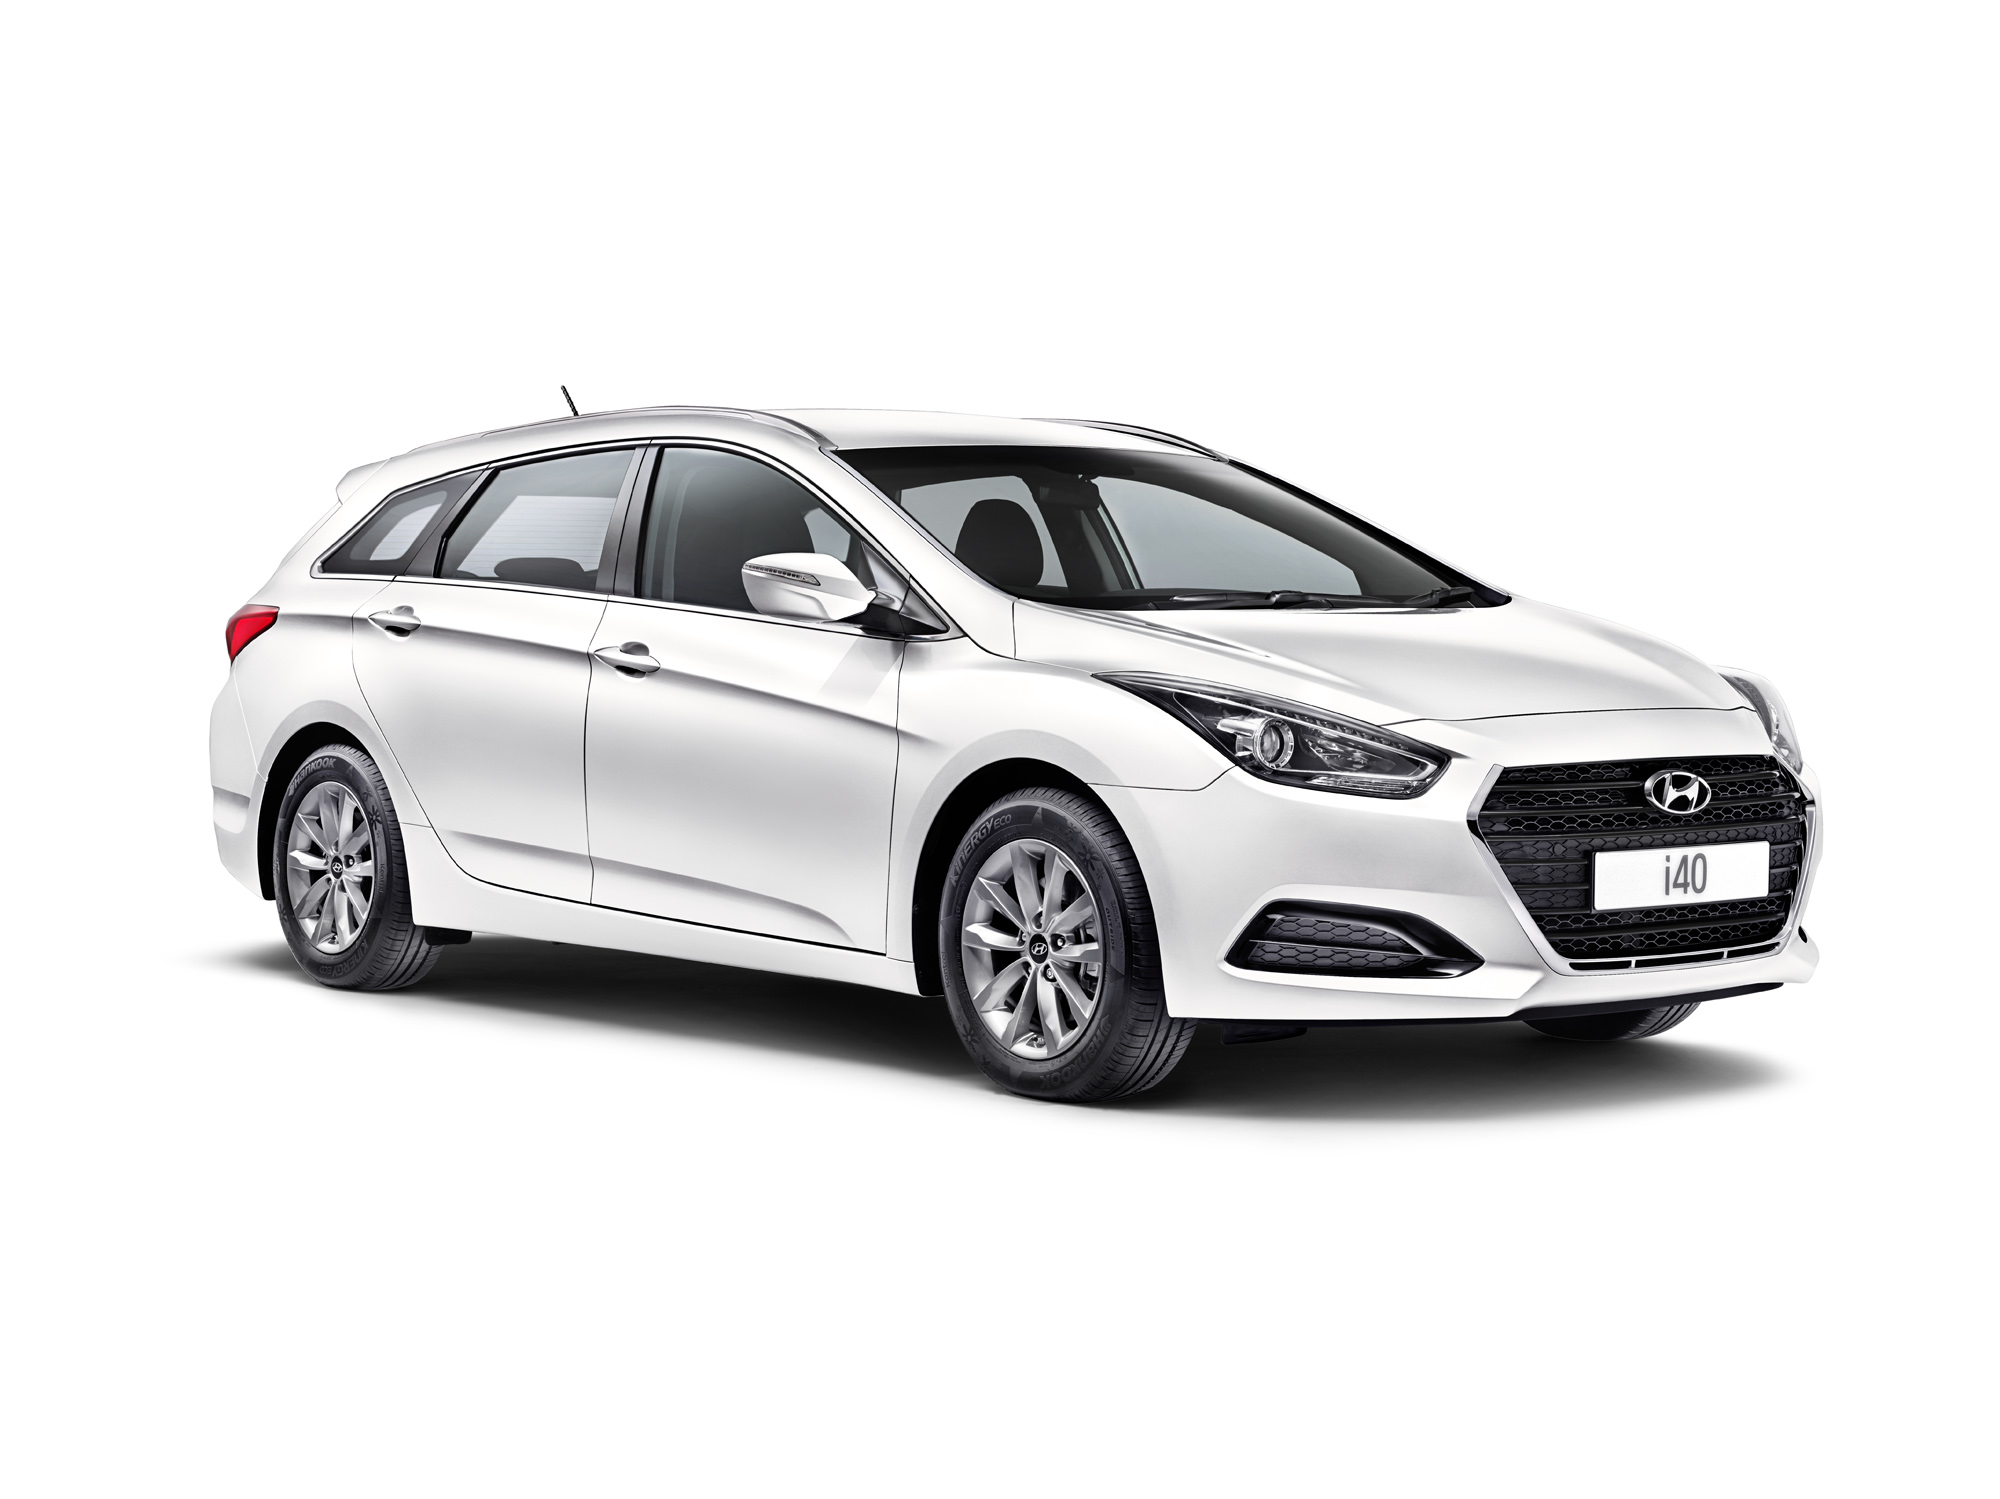 hyundai i40 range from 16995 barras car centre. Black Bedroom Furniture Sets. Home Design Ideas